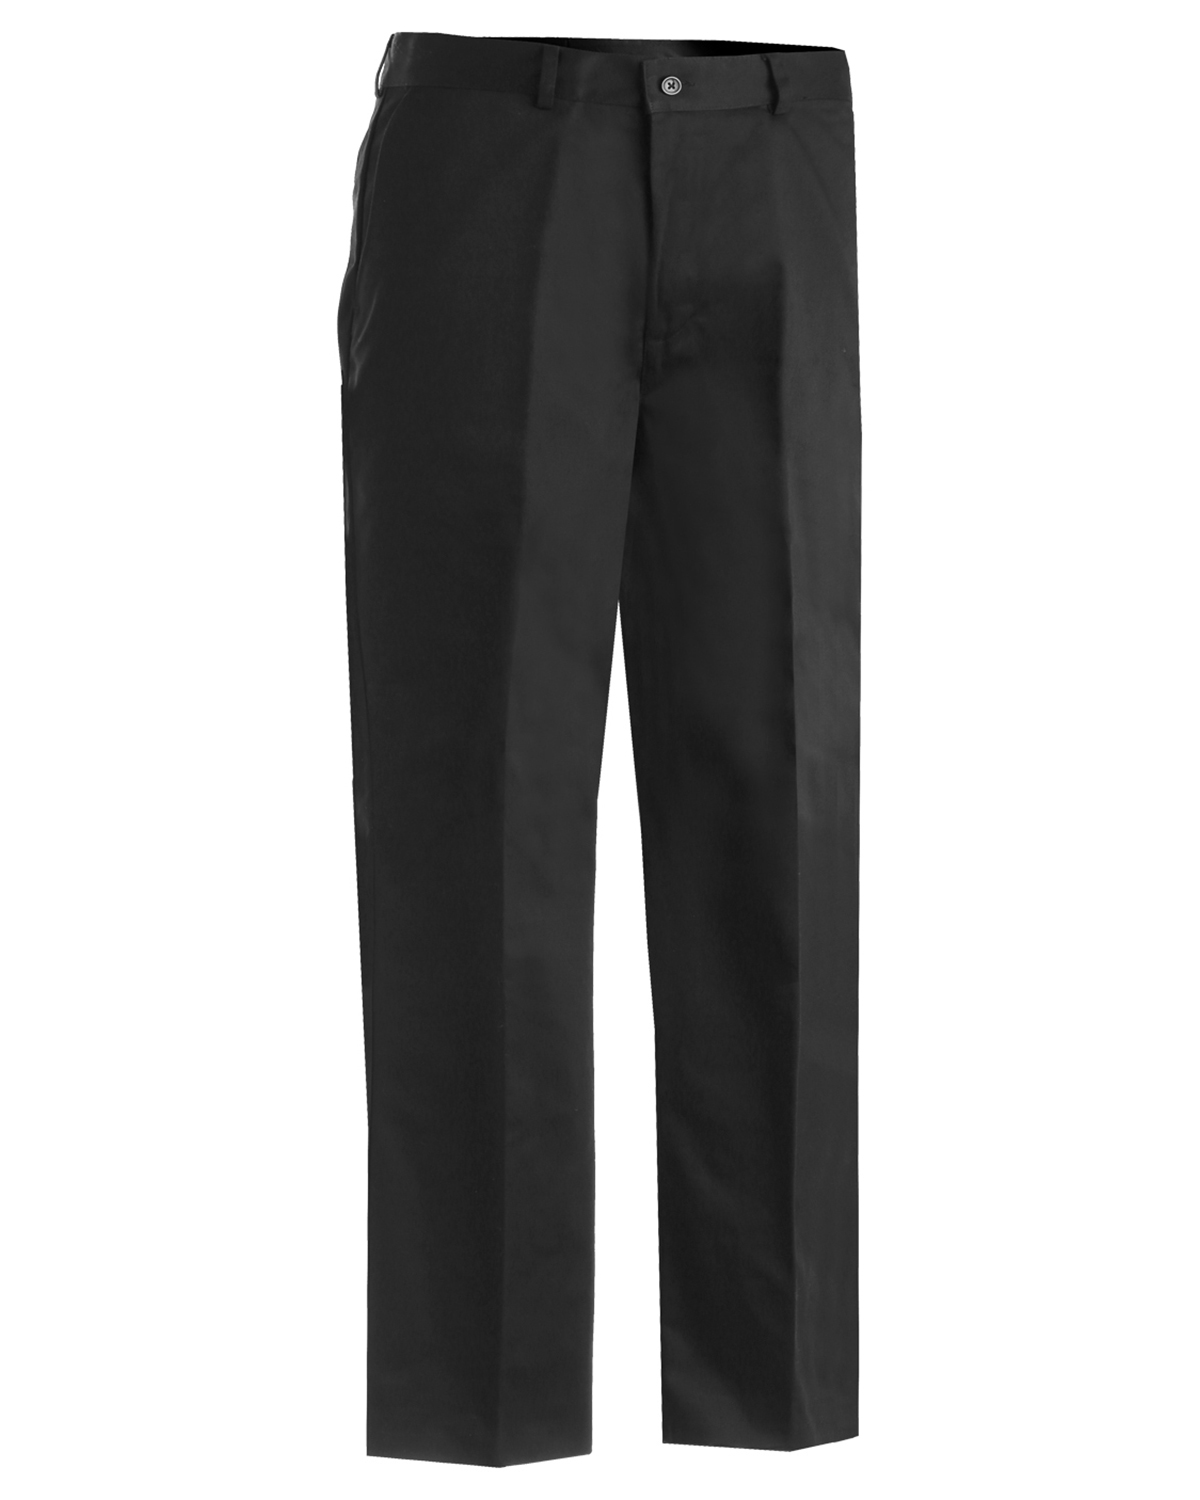 Edwards 2577 Men's Flat Front Chino Utility Pant at GotApparel